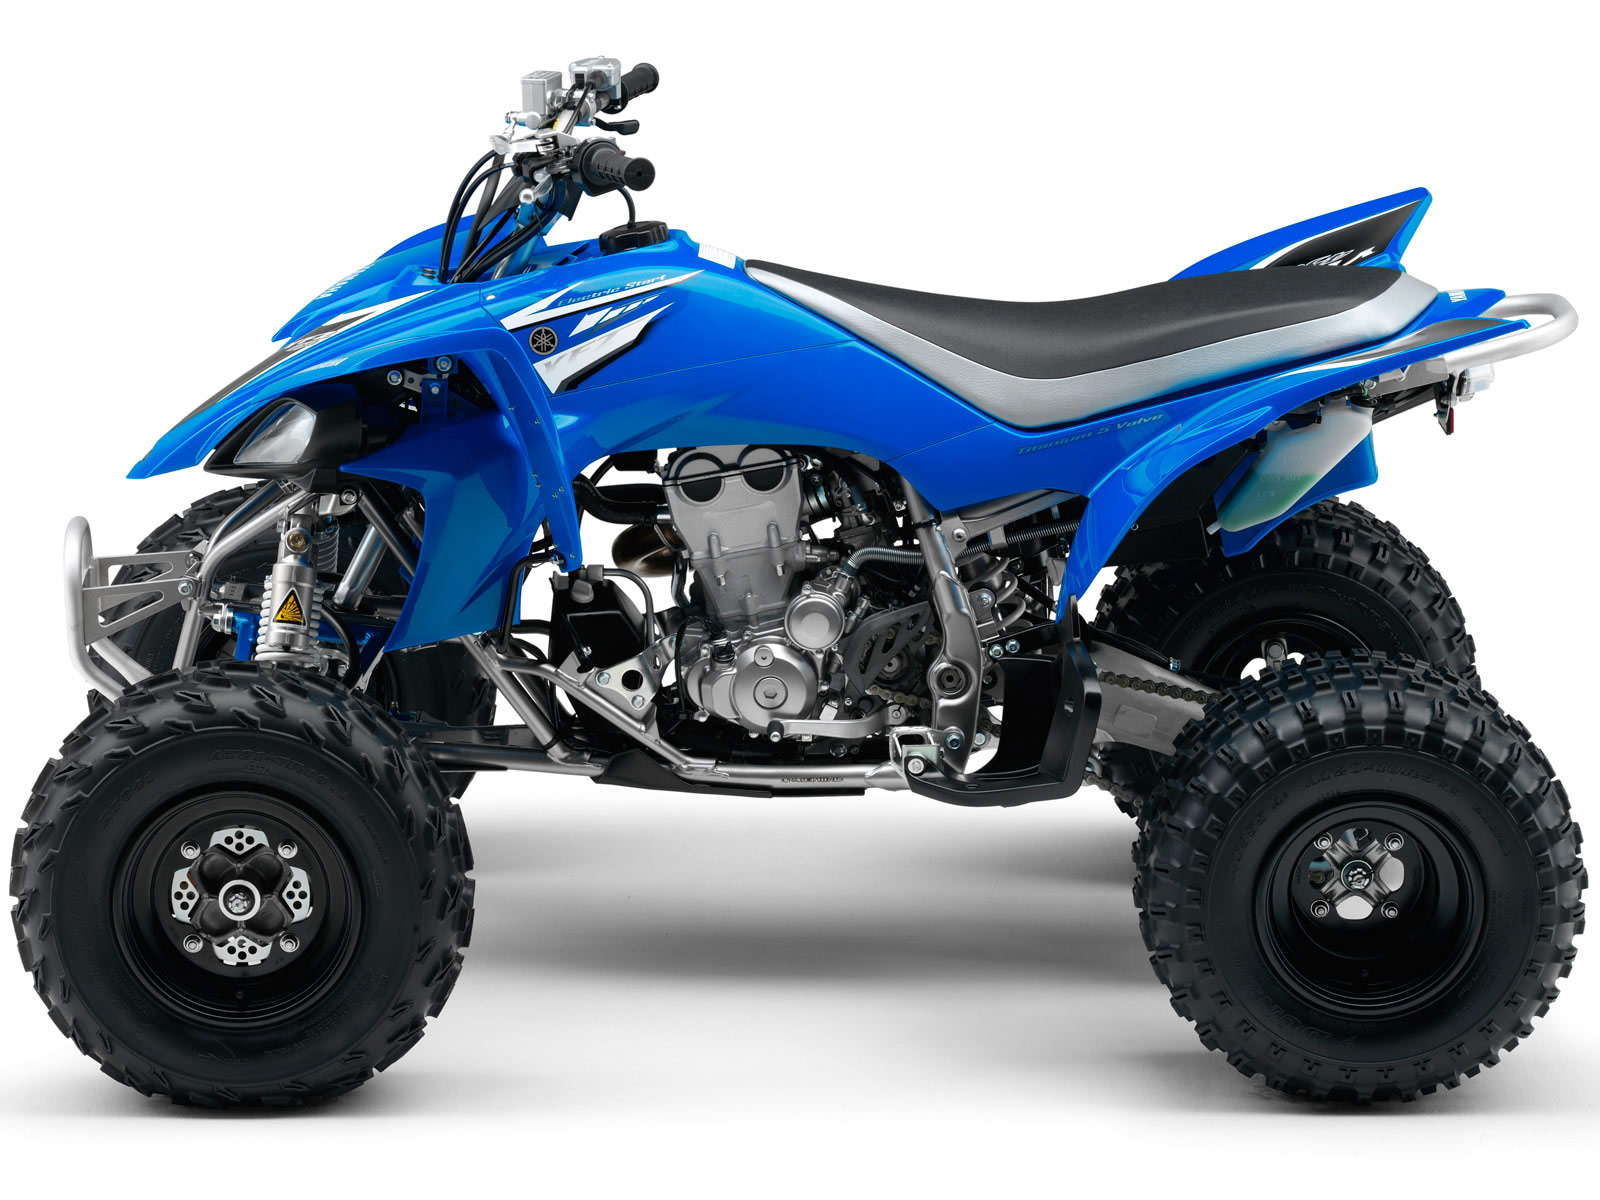 Download Yamaha Yfz450 Yfz 450 Repair Manual 2004 2010